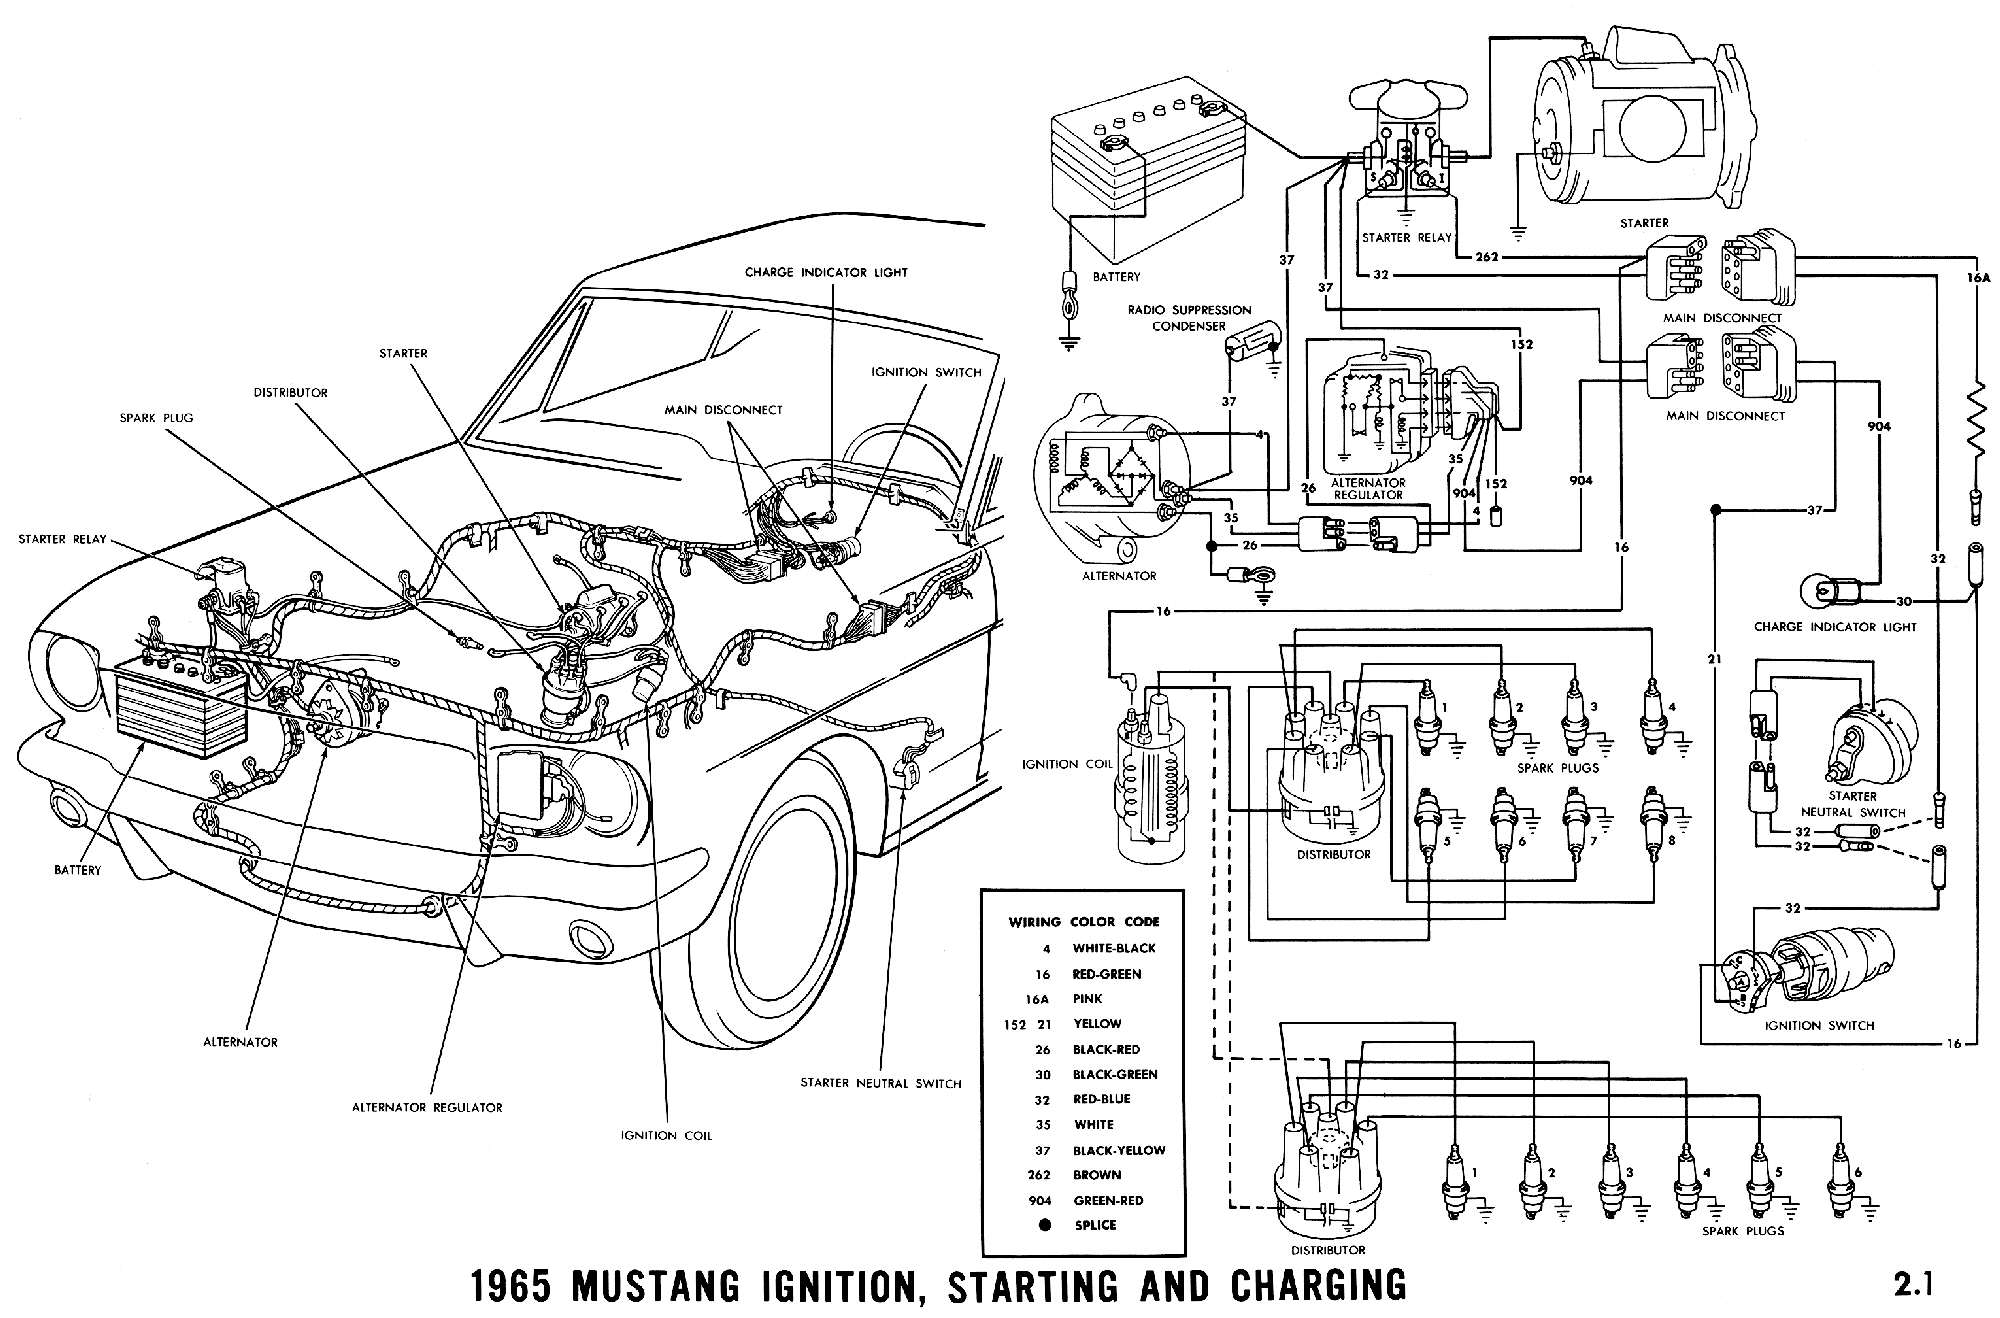 1965c 1965 mustang wiring diagrams average joe restoration 65 mustang ignition wiring diagram at mifinder.co